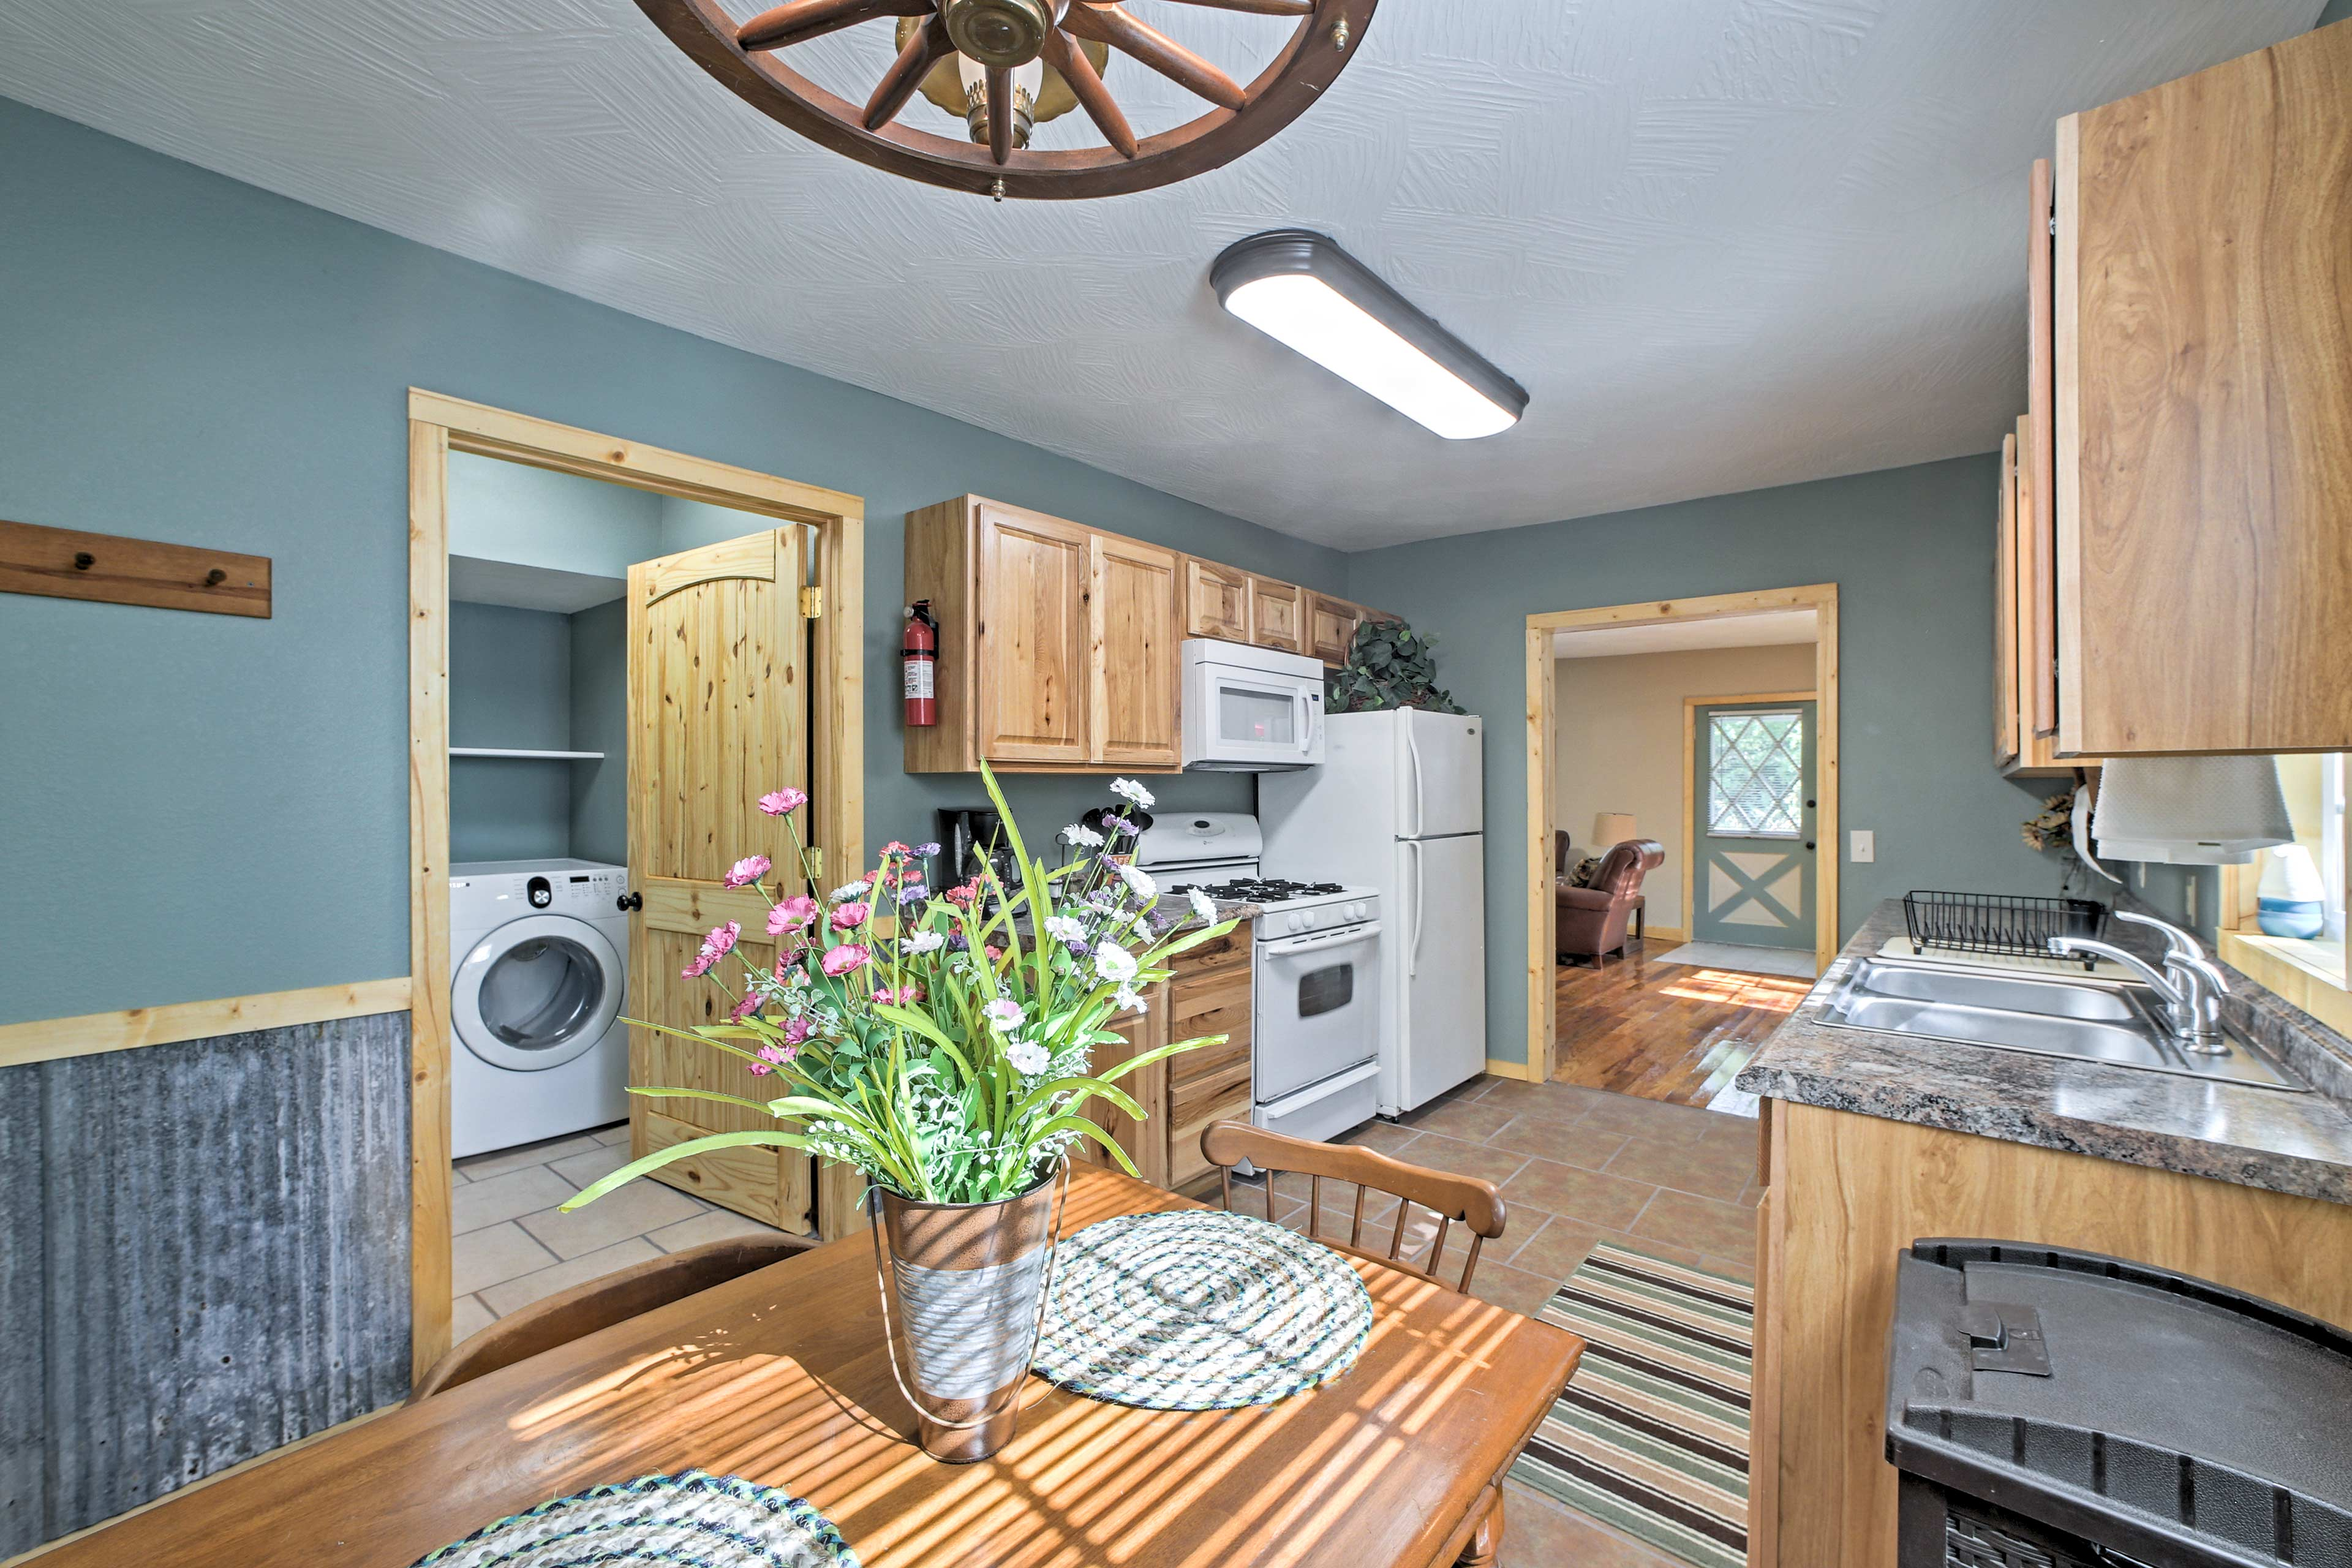 The light-filled room is inviting and a great setting for family bonding!